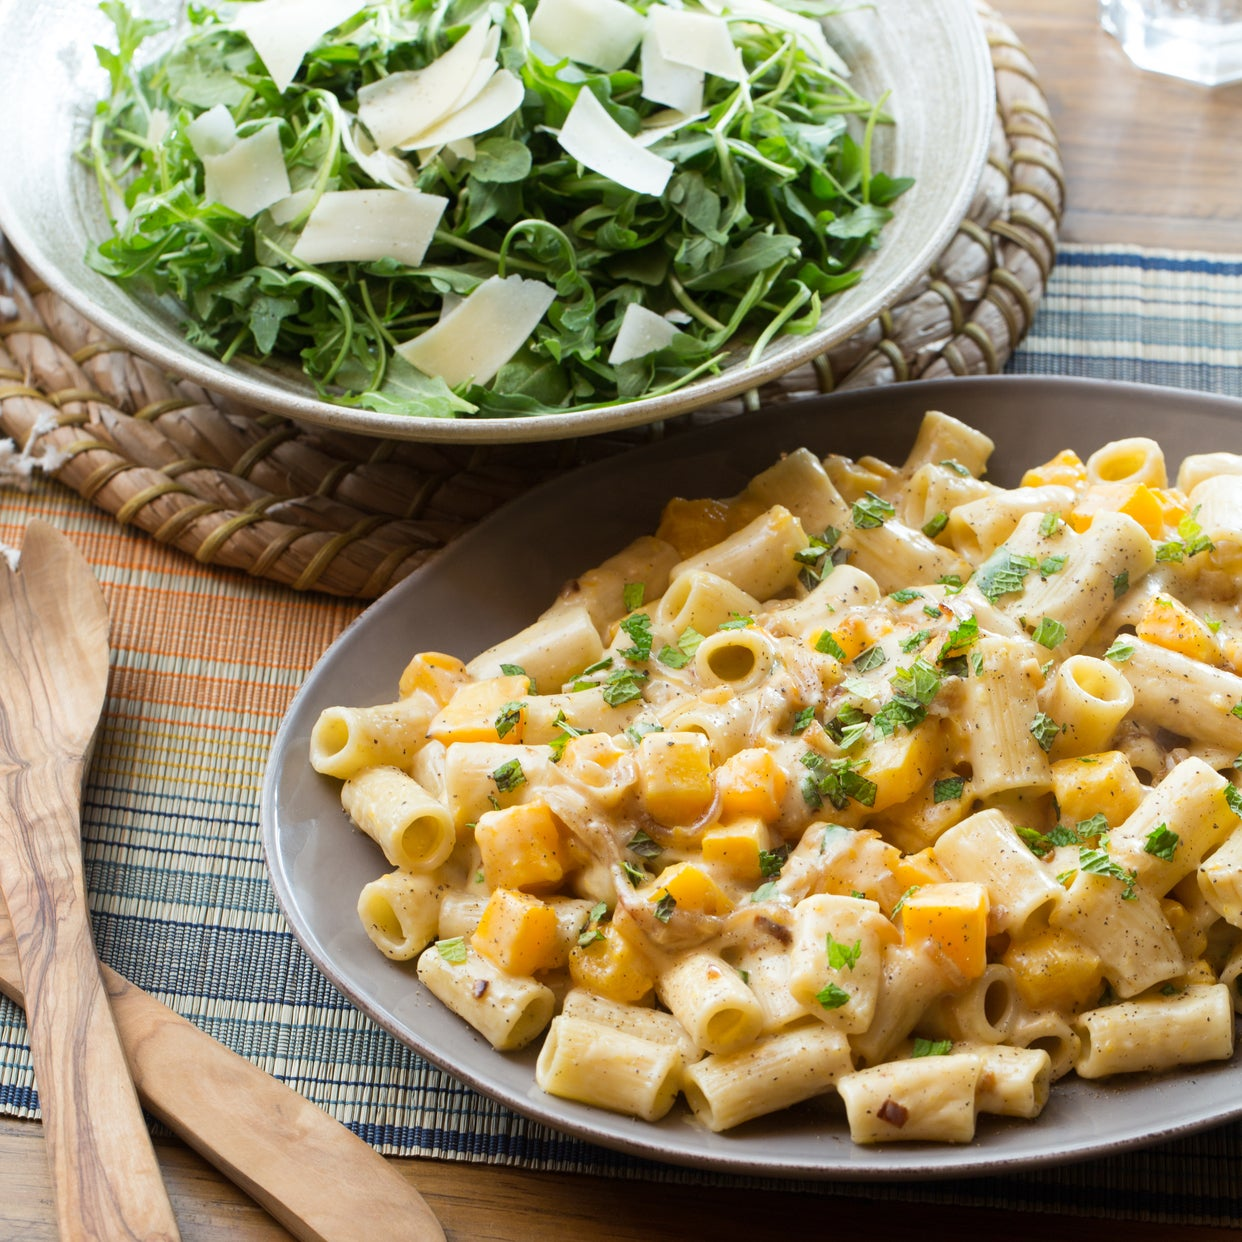 Goat Cheese & Butternut Squash Pasta with Arugula & Shaved Parmesan Salad